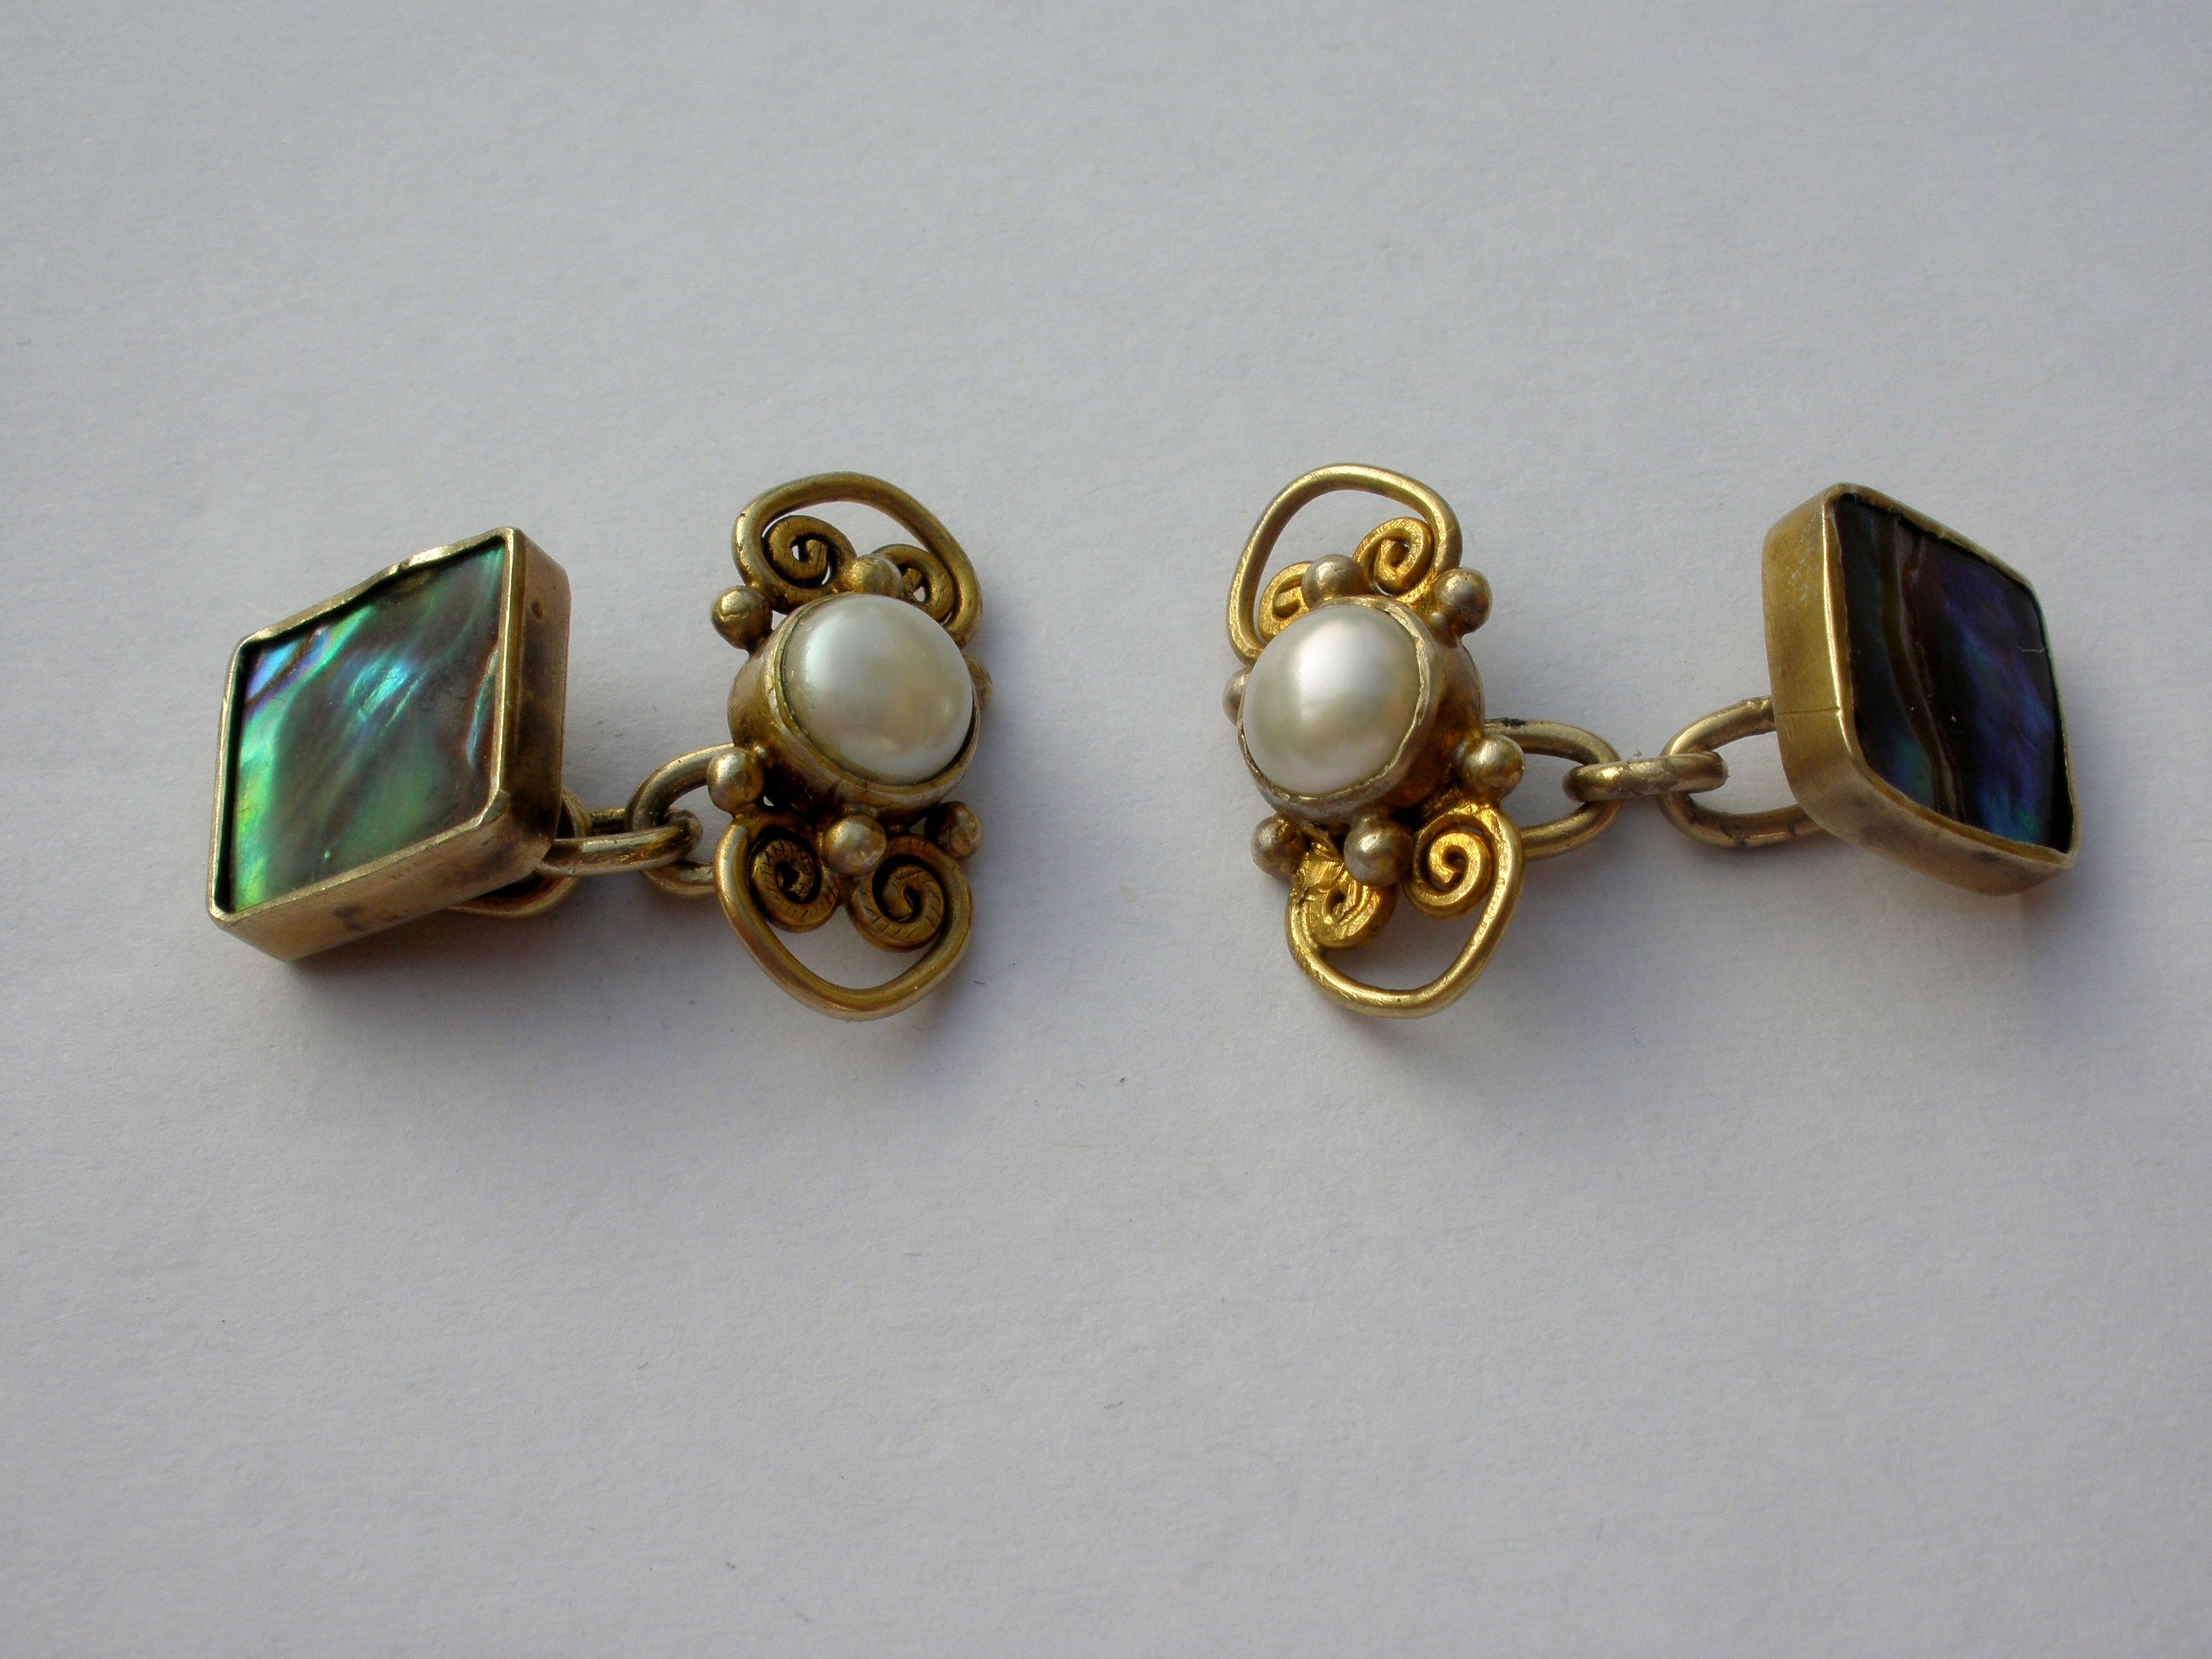 Mary Thew, Arts and Crafts pair of cultured pearl and abalone shell cuff links, Scotland, circa 1920, unmarked, the abalone shell panel 10 mm square